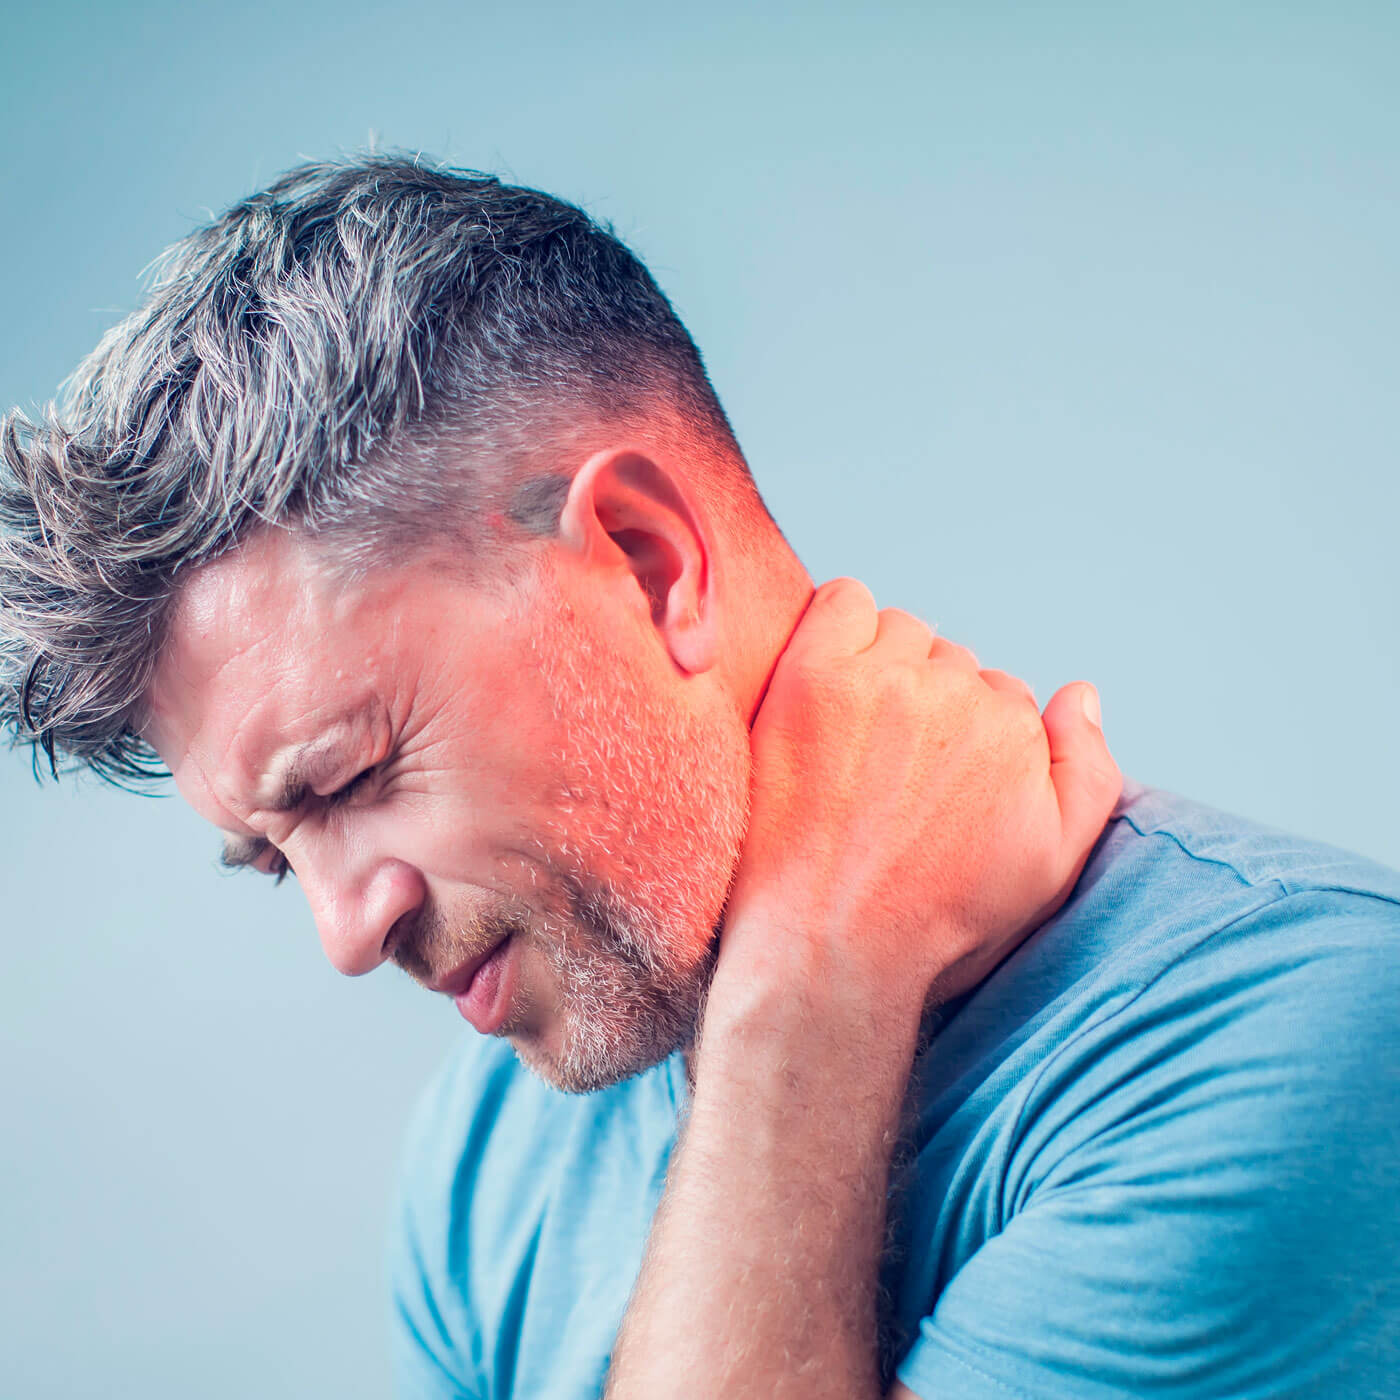 Essential Chiropractic and Healthcare Clinic- Chiropractic Conditions Treatment and Relief Tired Sore Neck Pain